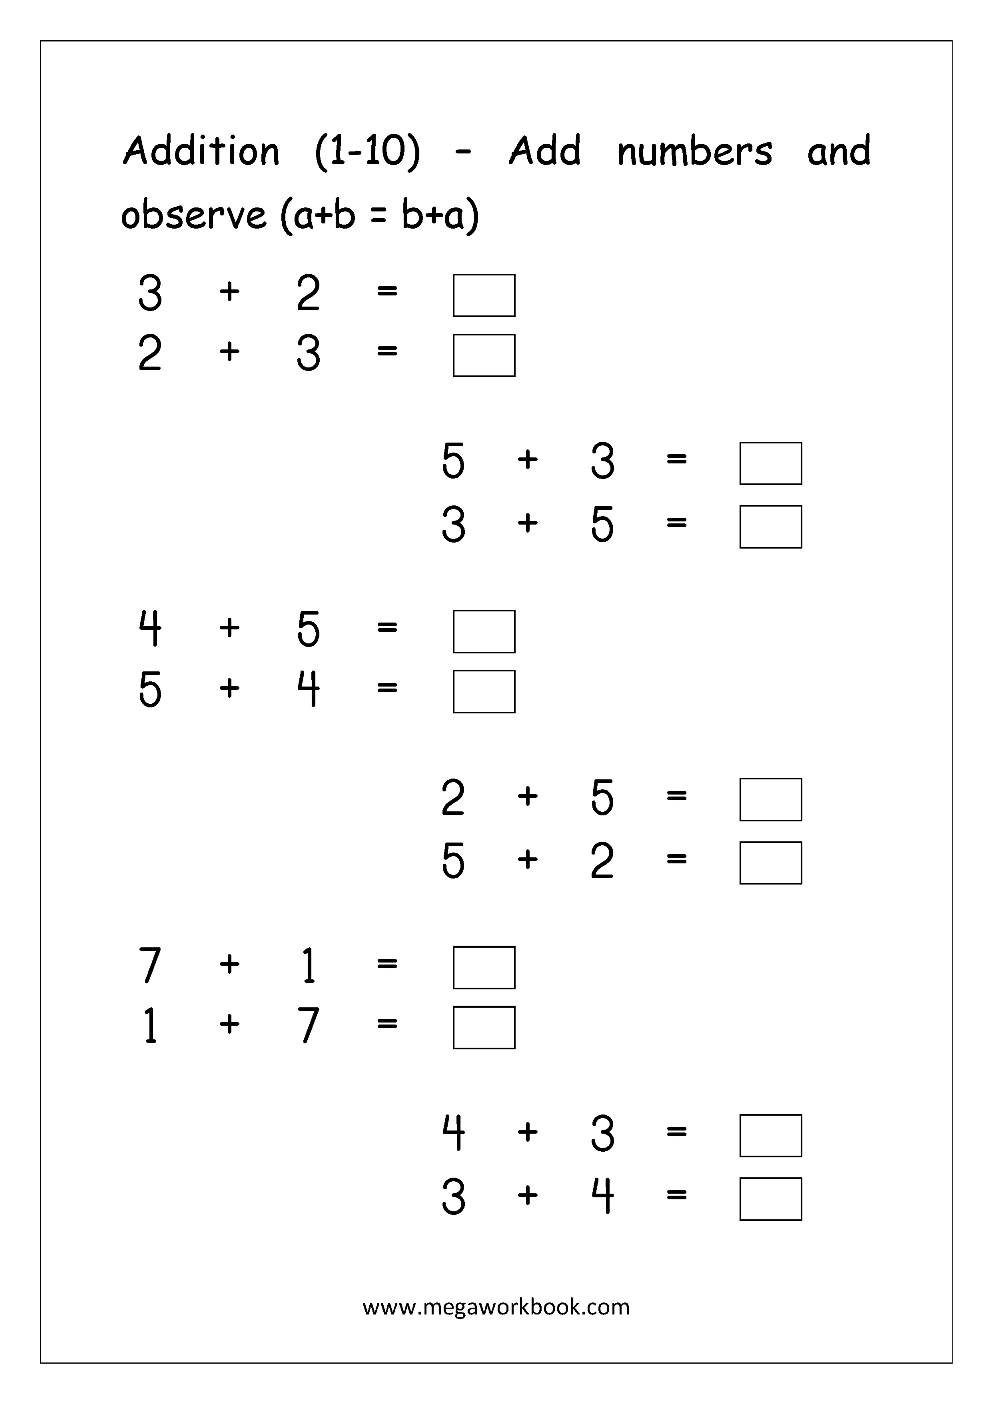 Workbooks number practice worksheets : Free Math Worksheets - Number Addition - MegaWorkbook